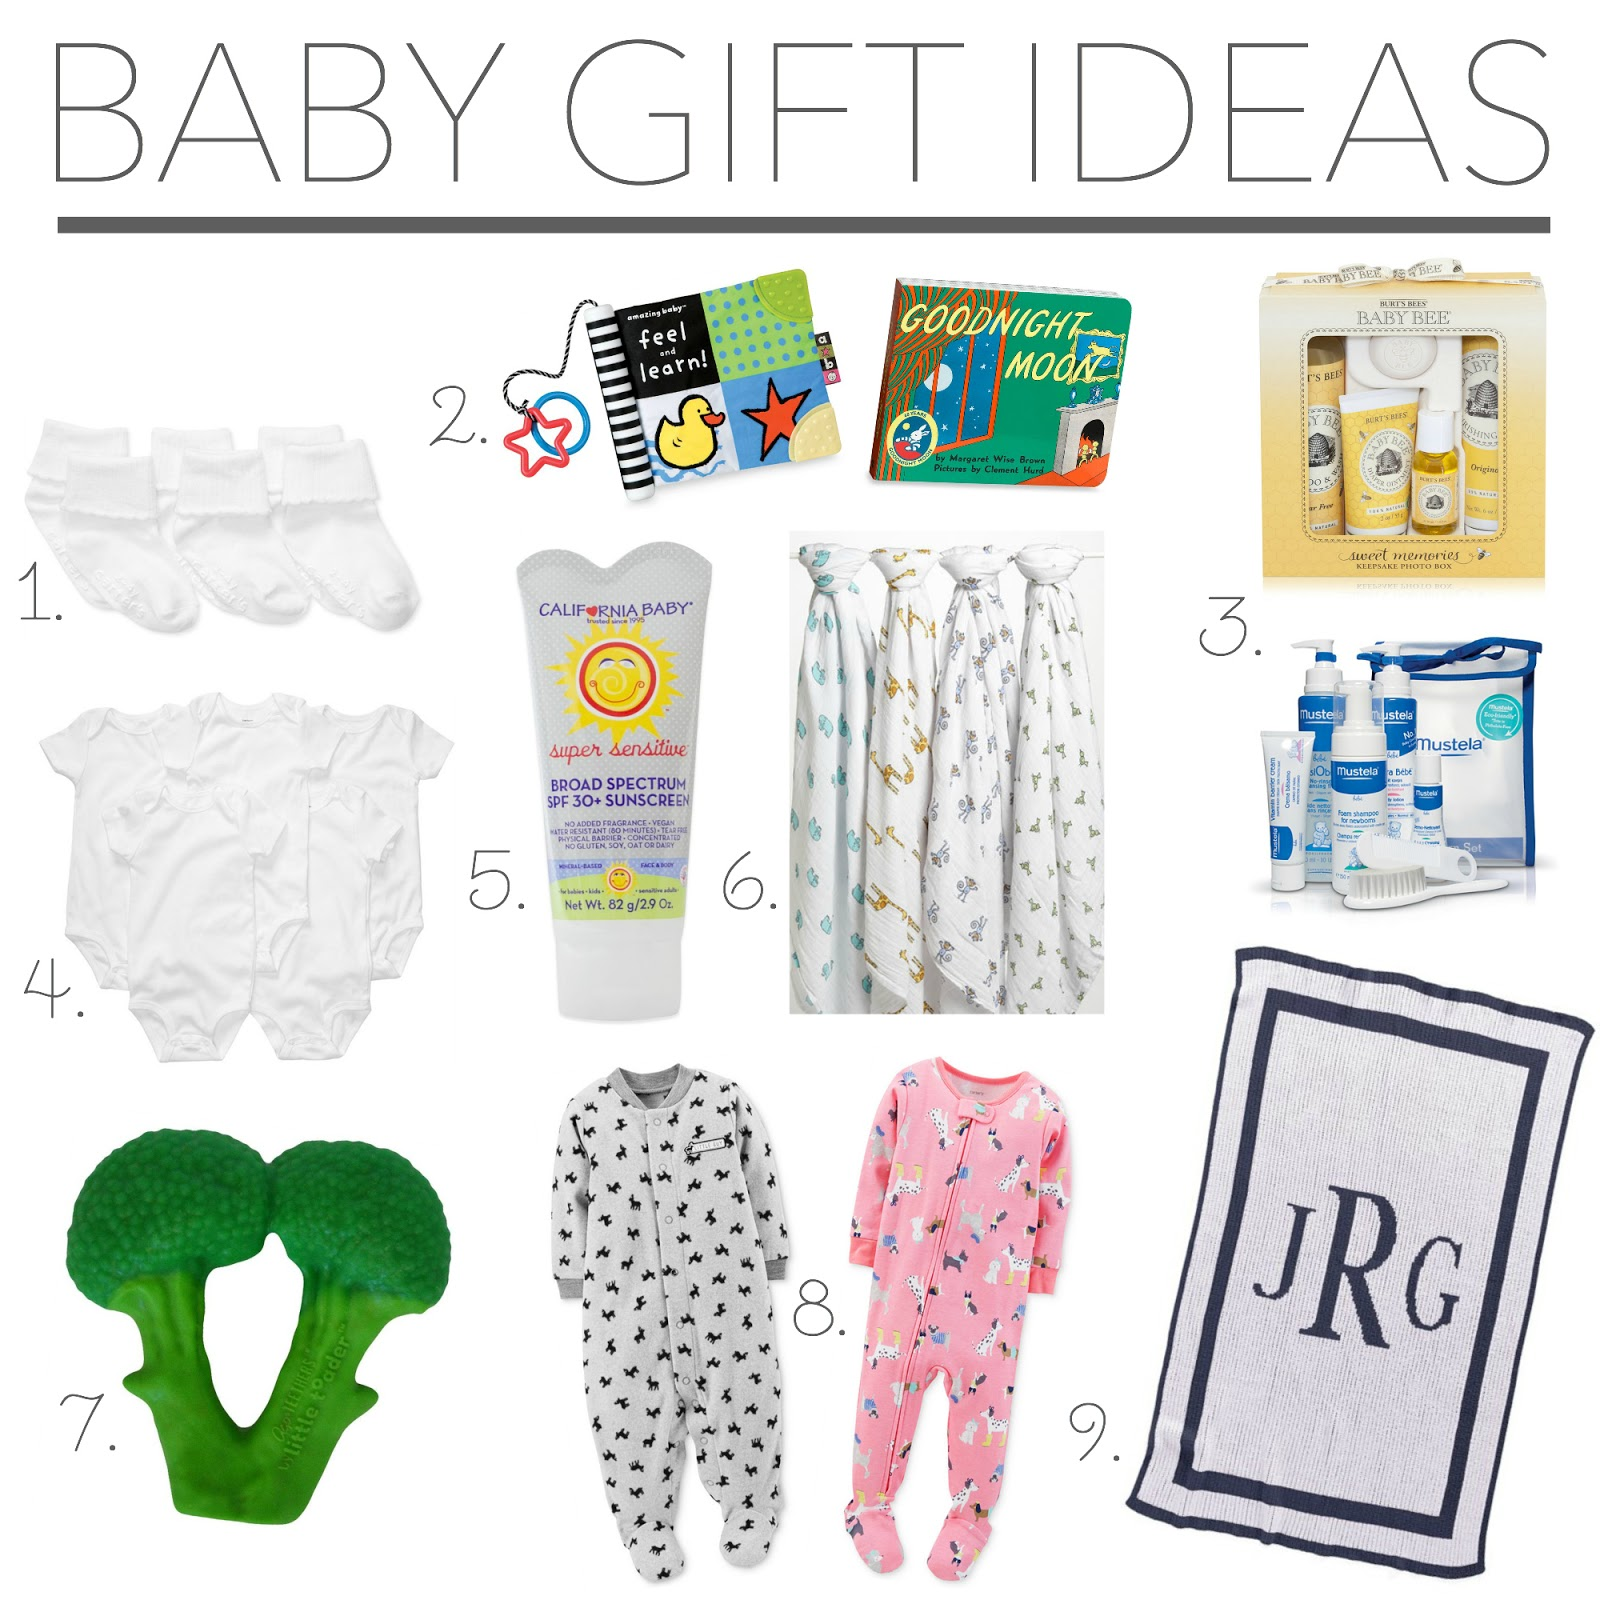 Baby Gift List Poem : Baby shower gift ideas her